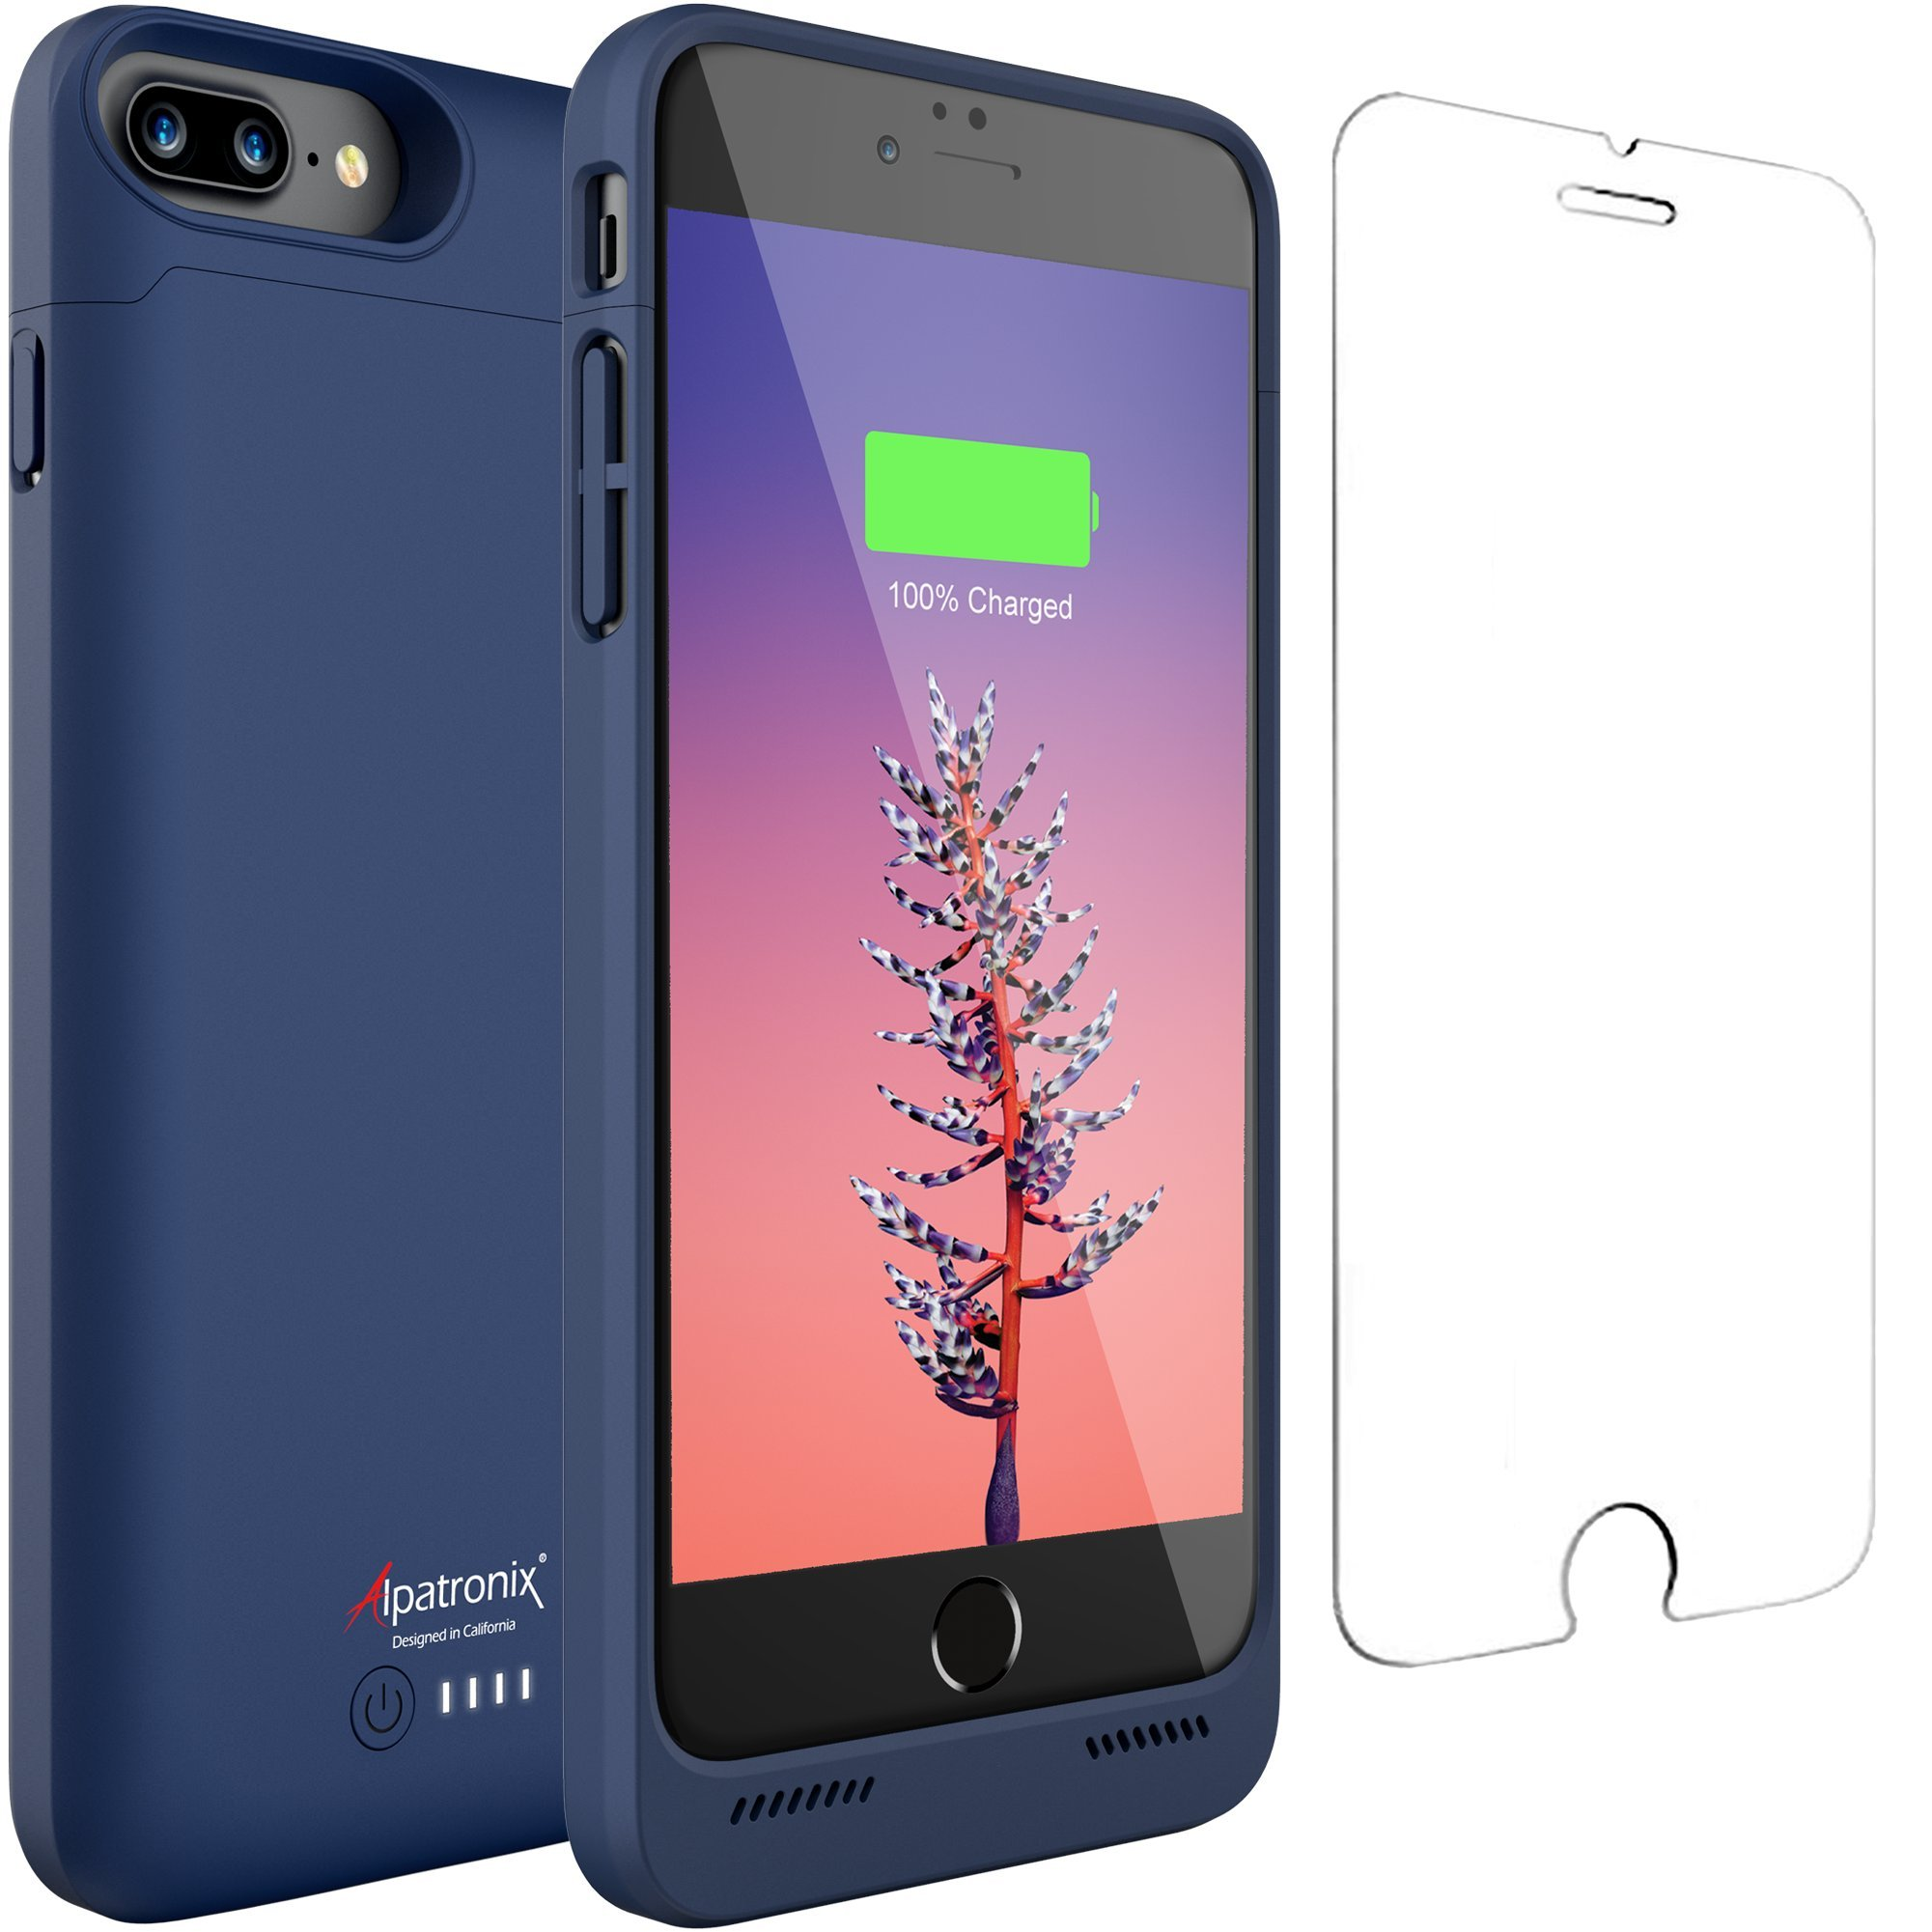 iPhone 8 Plus / 7 Plus Battery Case Qi Wireless Charging Compatible, Alpatronix BX190plus 5.5-inch 5000mAh Rechargeable Protective Portable Charger for iPhone 8+/7+ Juice Bank Power Pack - Blue